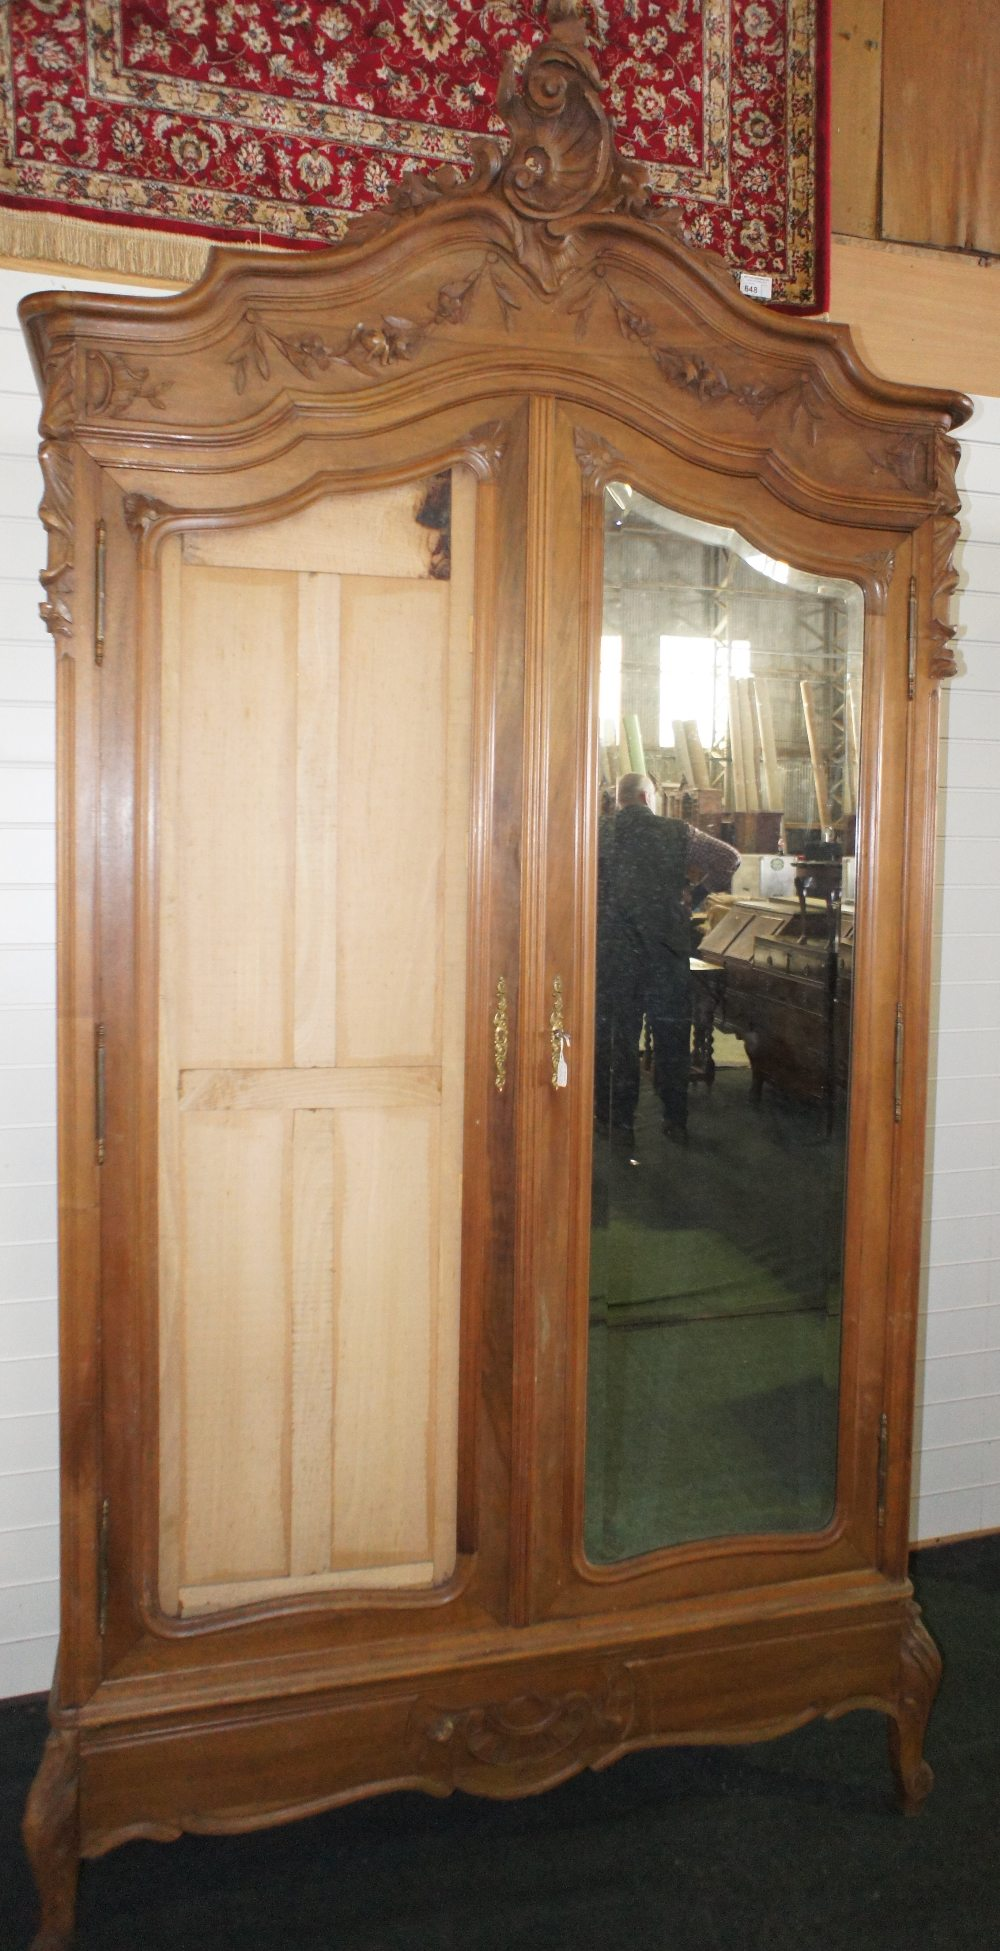 Lot 611 - NV- A highly decorative carved mahogany French style armoire/wardrobe with two mirrored doors (one